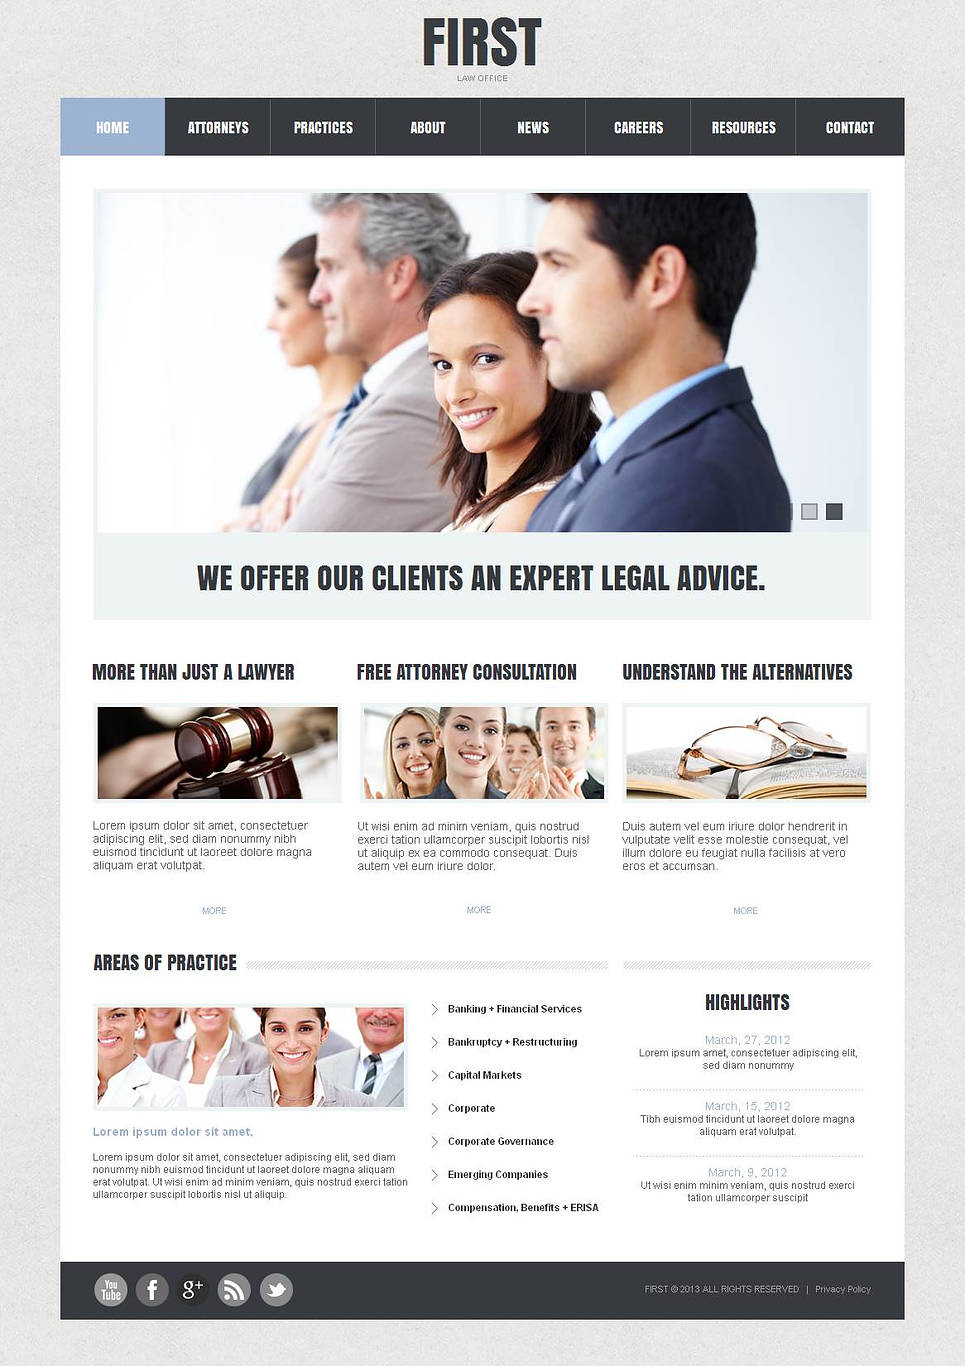 Law Office Website Template with Clean Design - image